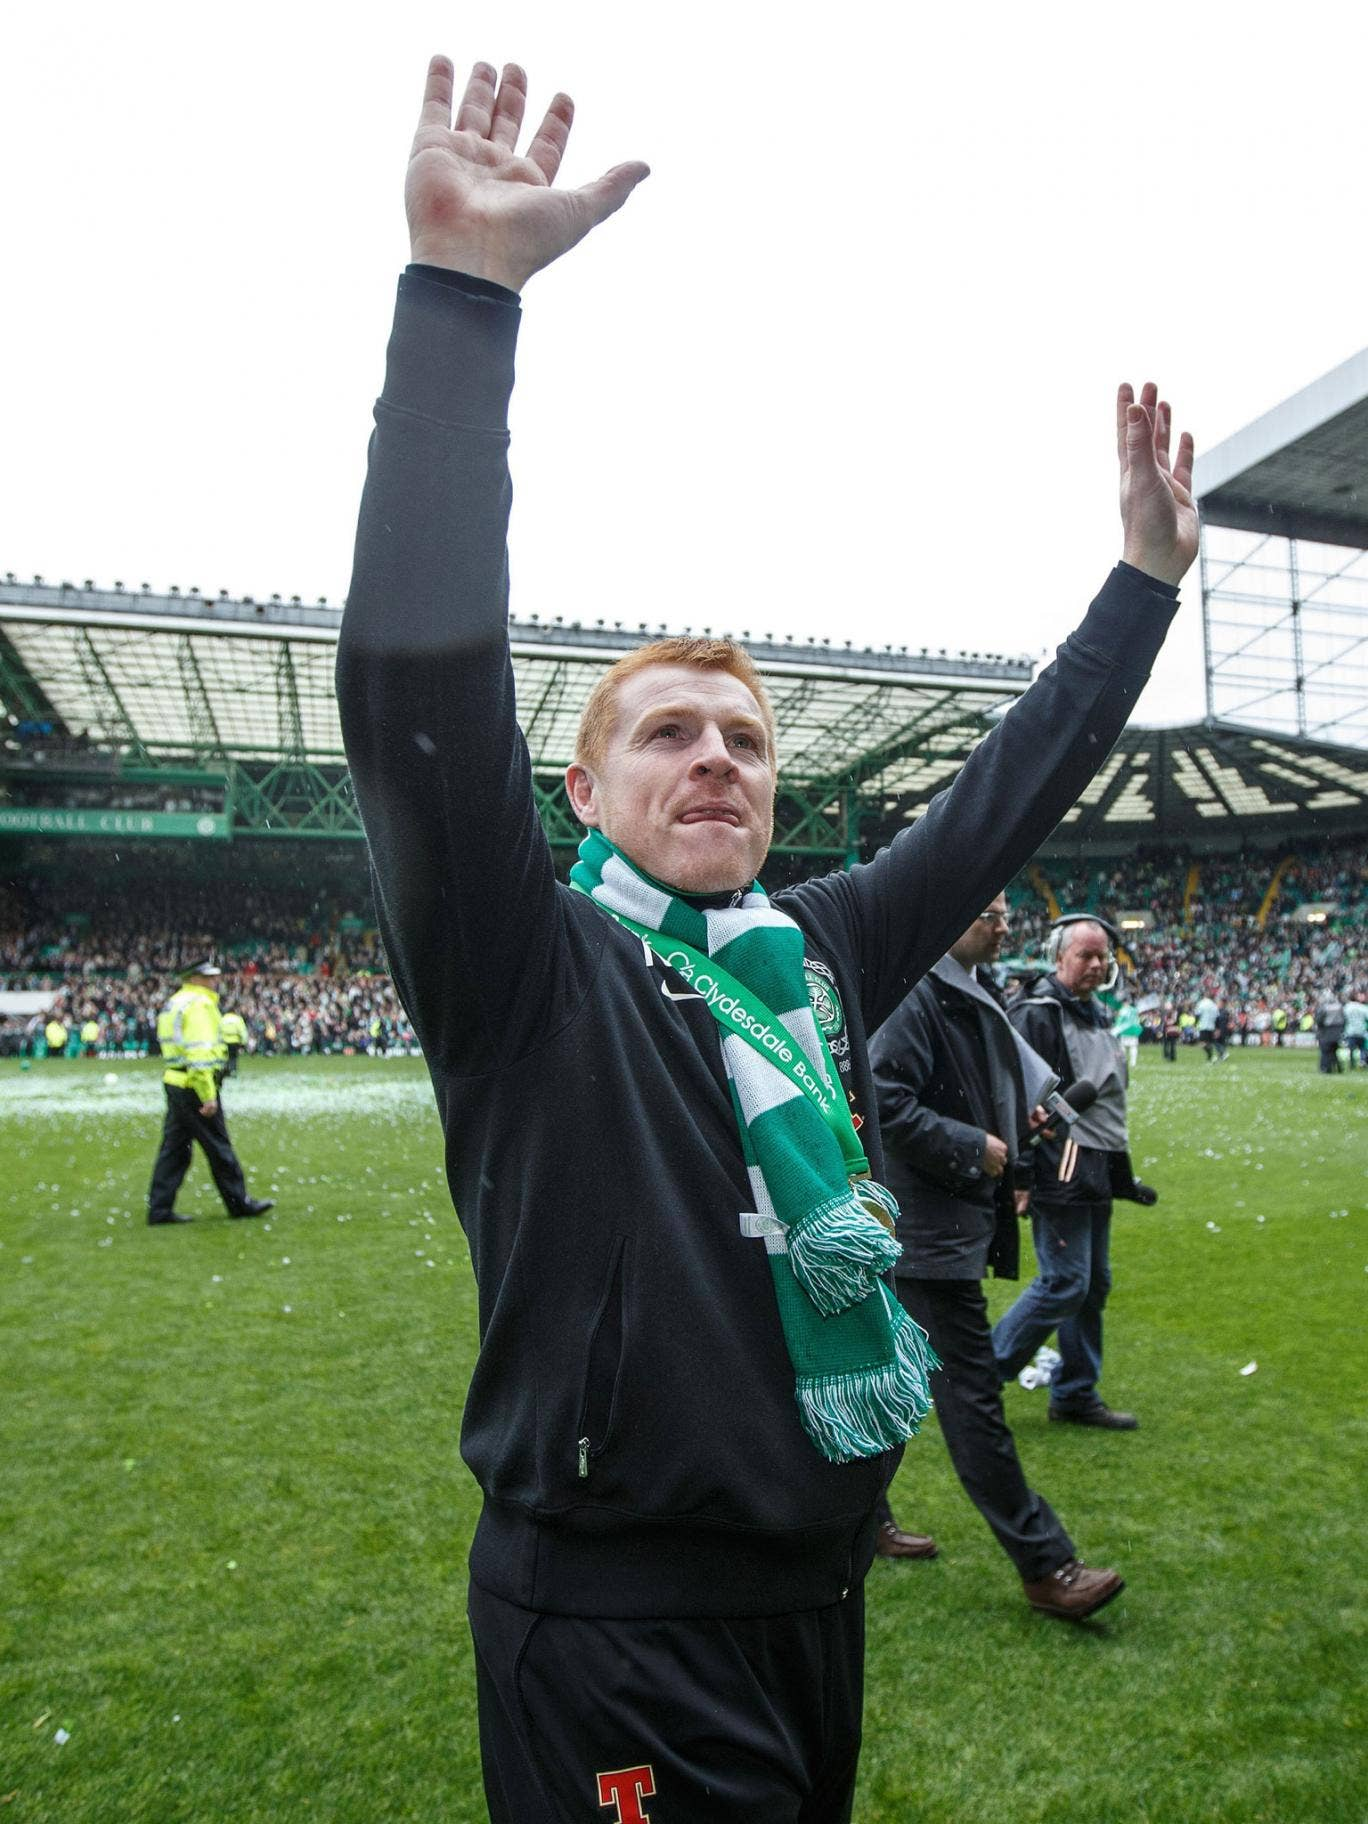 Buoyant: Neil Lennon enjoys the acclaim at Celtic Park after winning the League title in a season which also saw his team beat Barcelona at the stadium